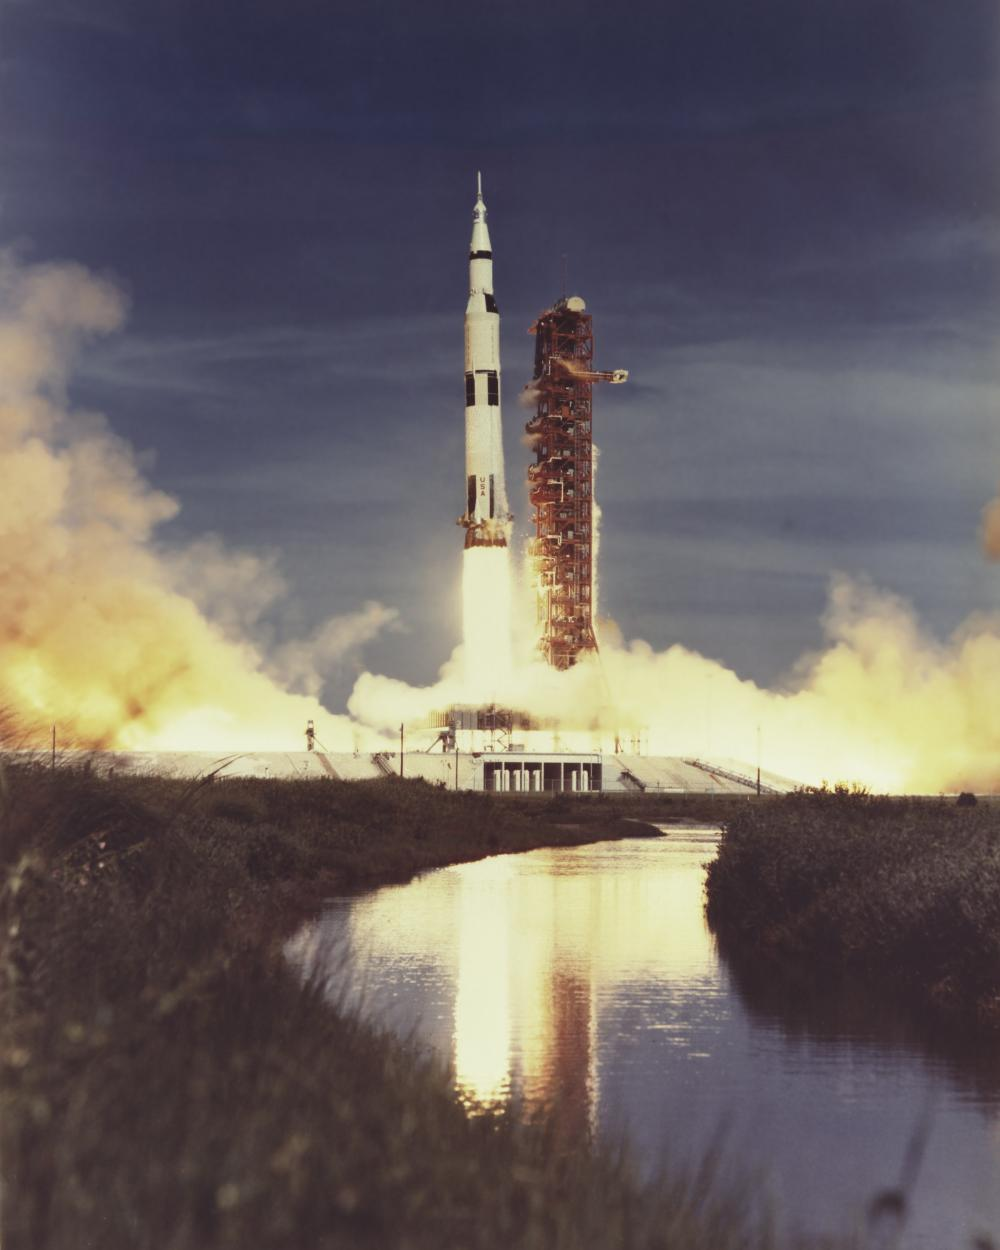 Image of the Apollo Rocket launching